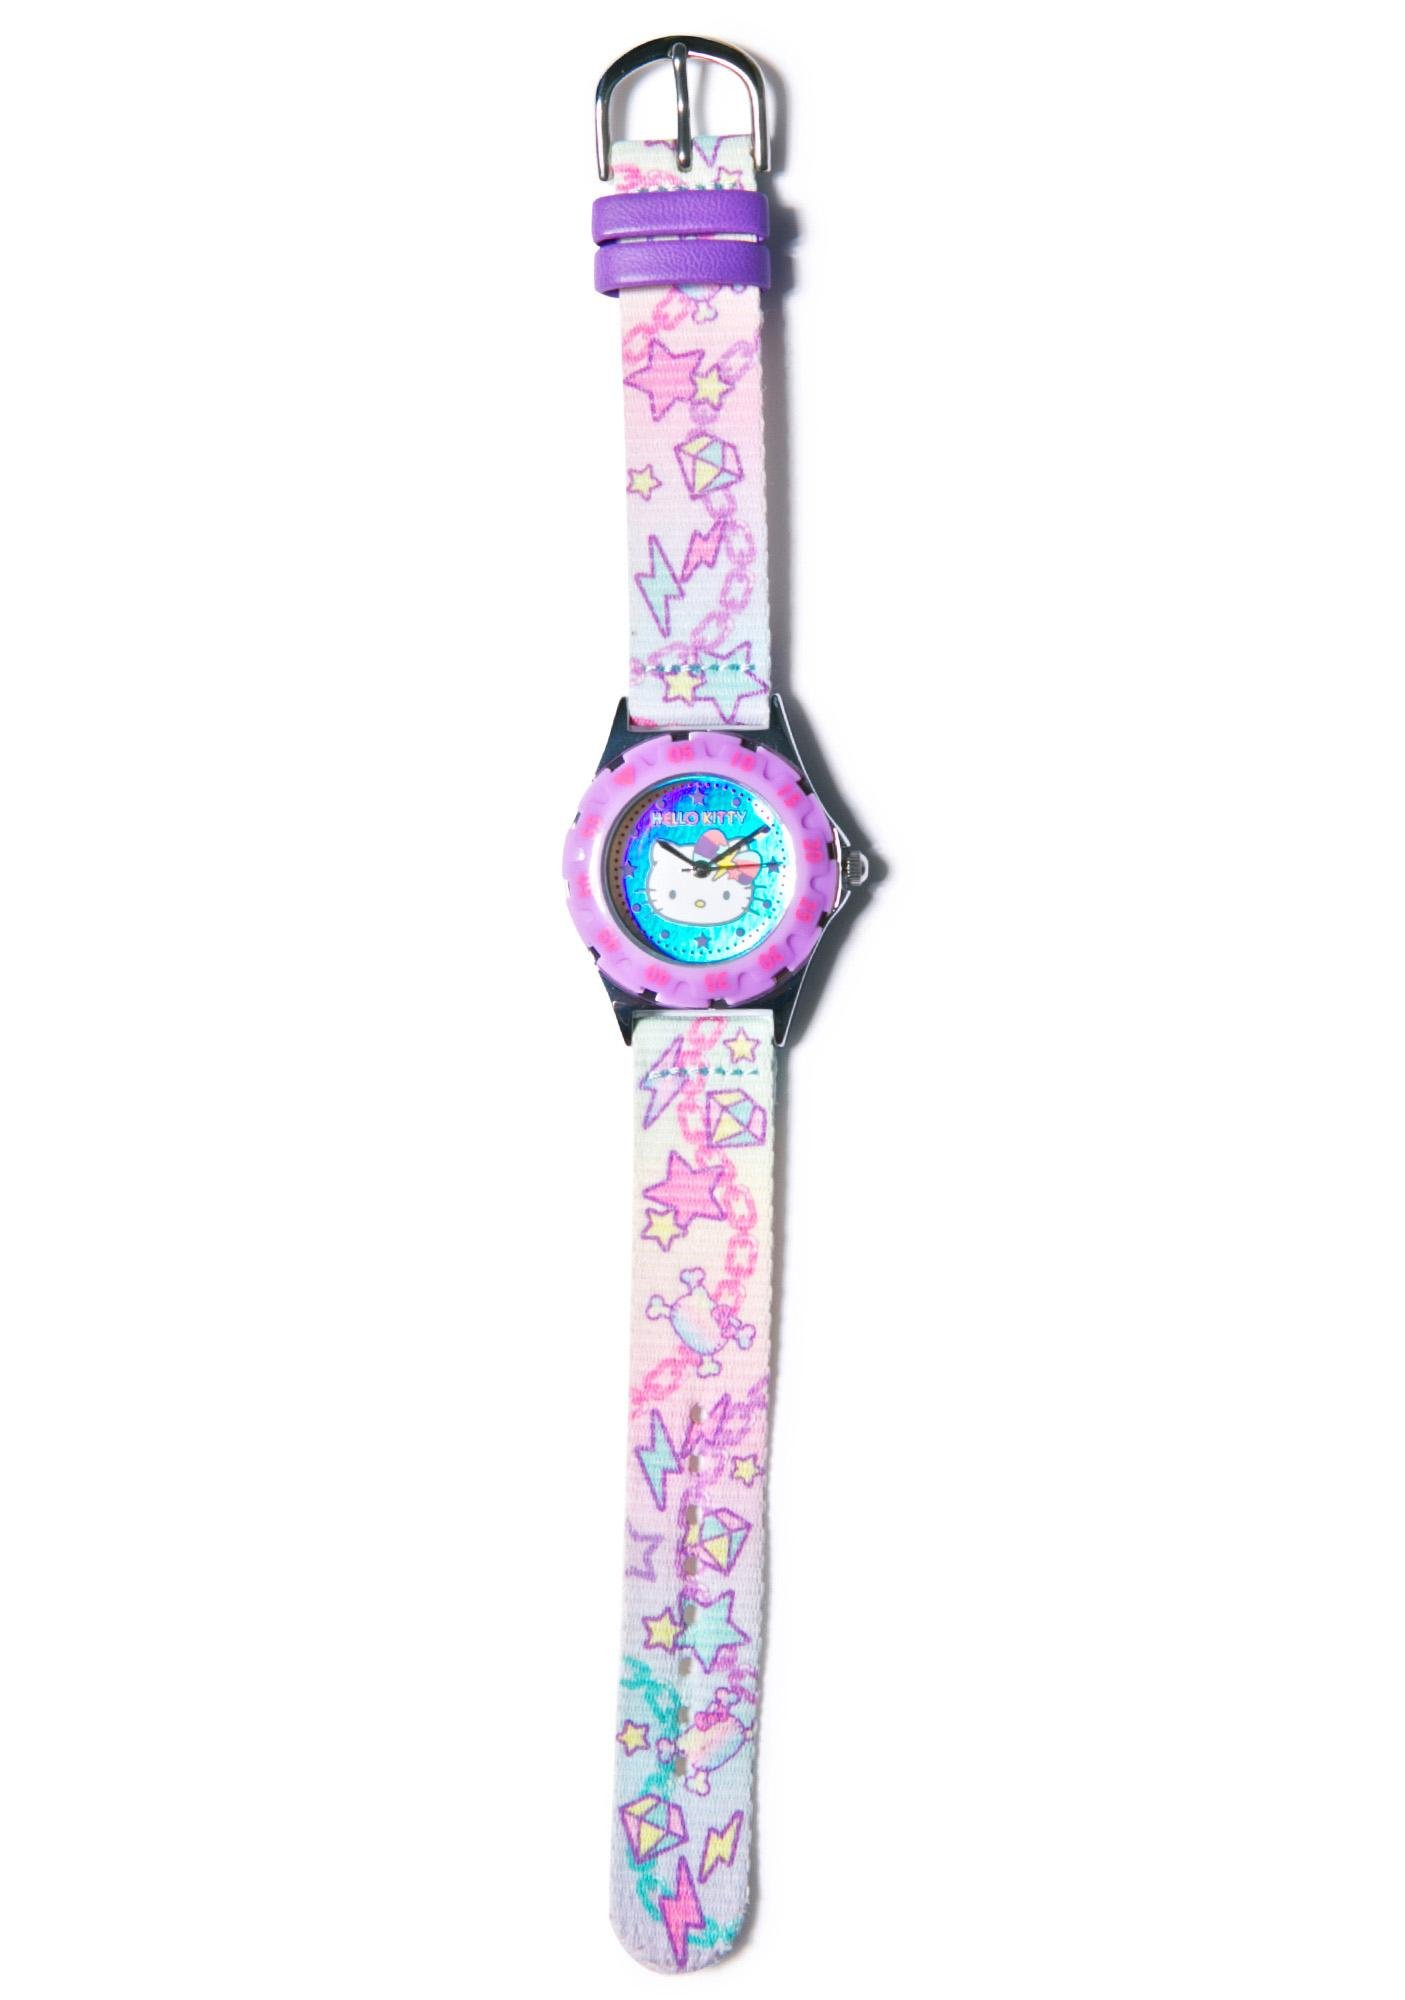 Sanrio Pastel Pop Hello Kitty Wrist Watch